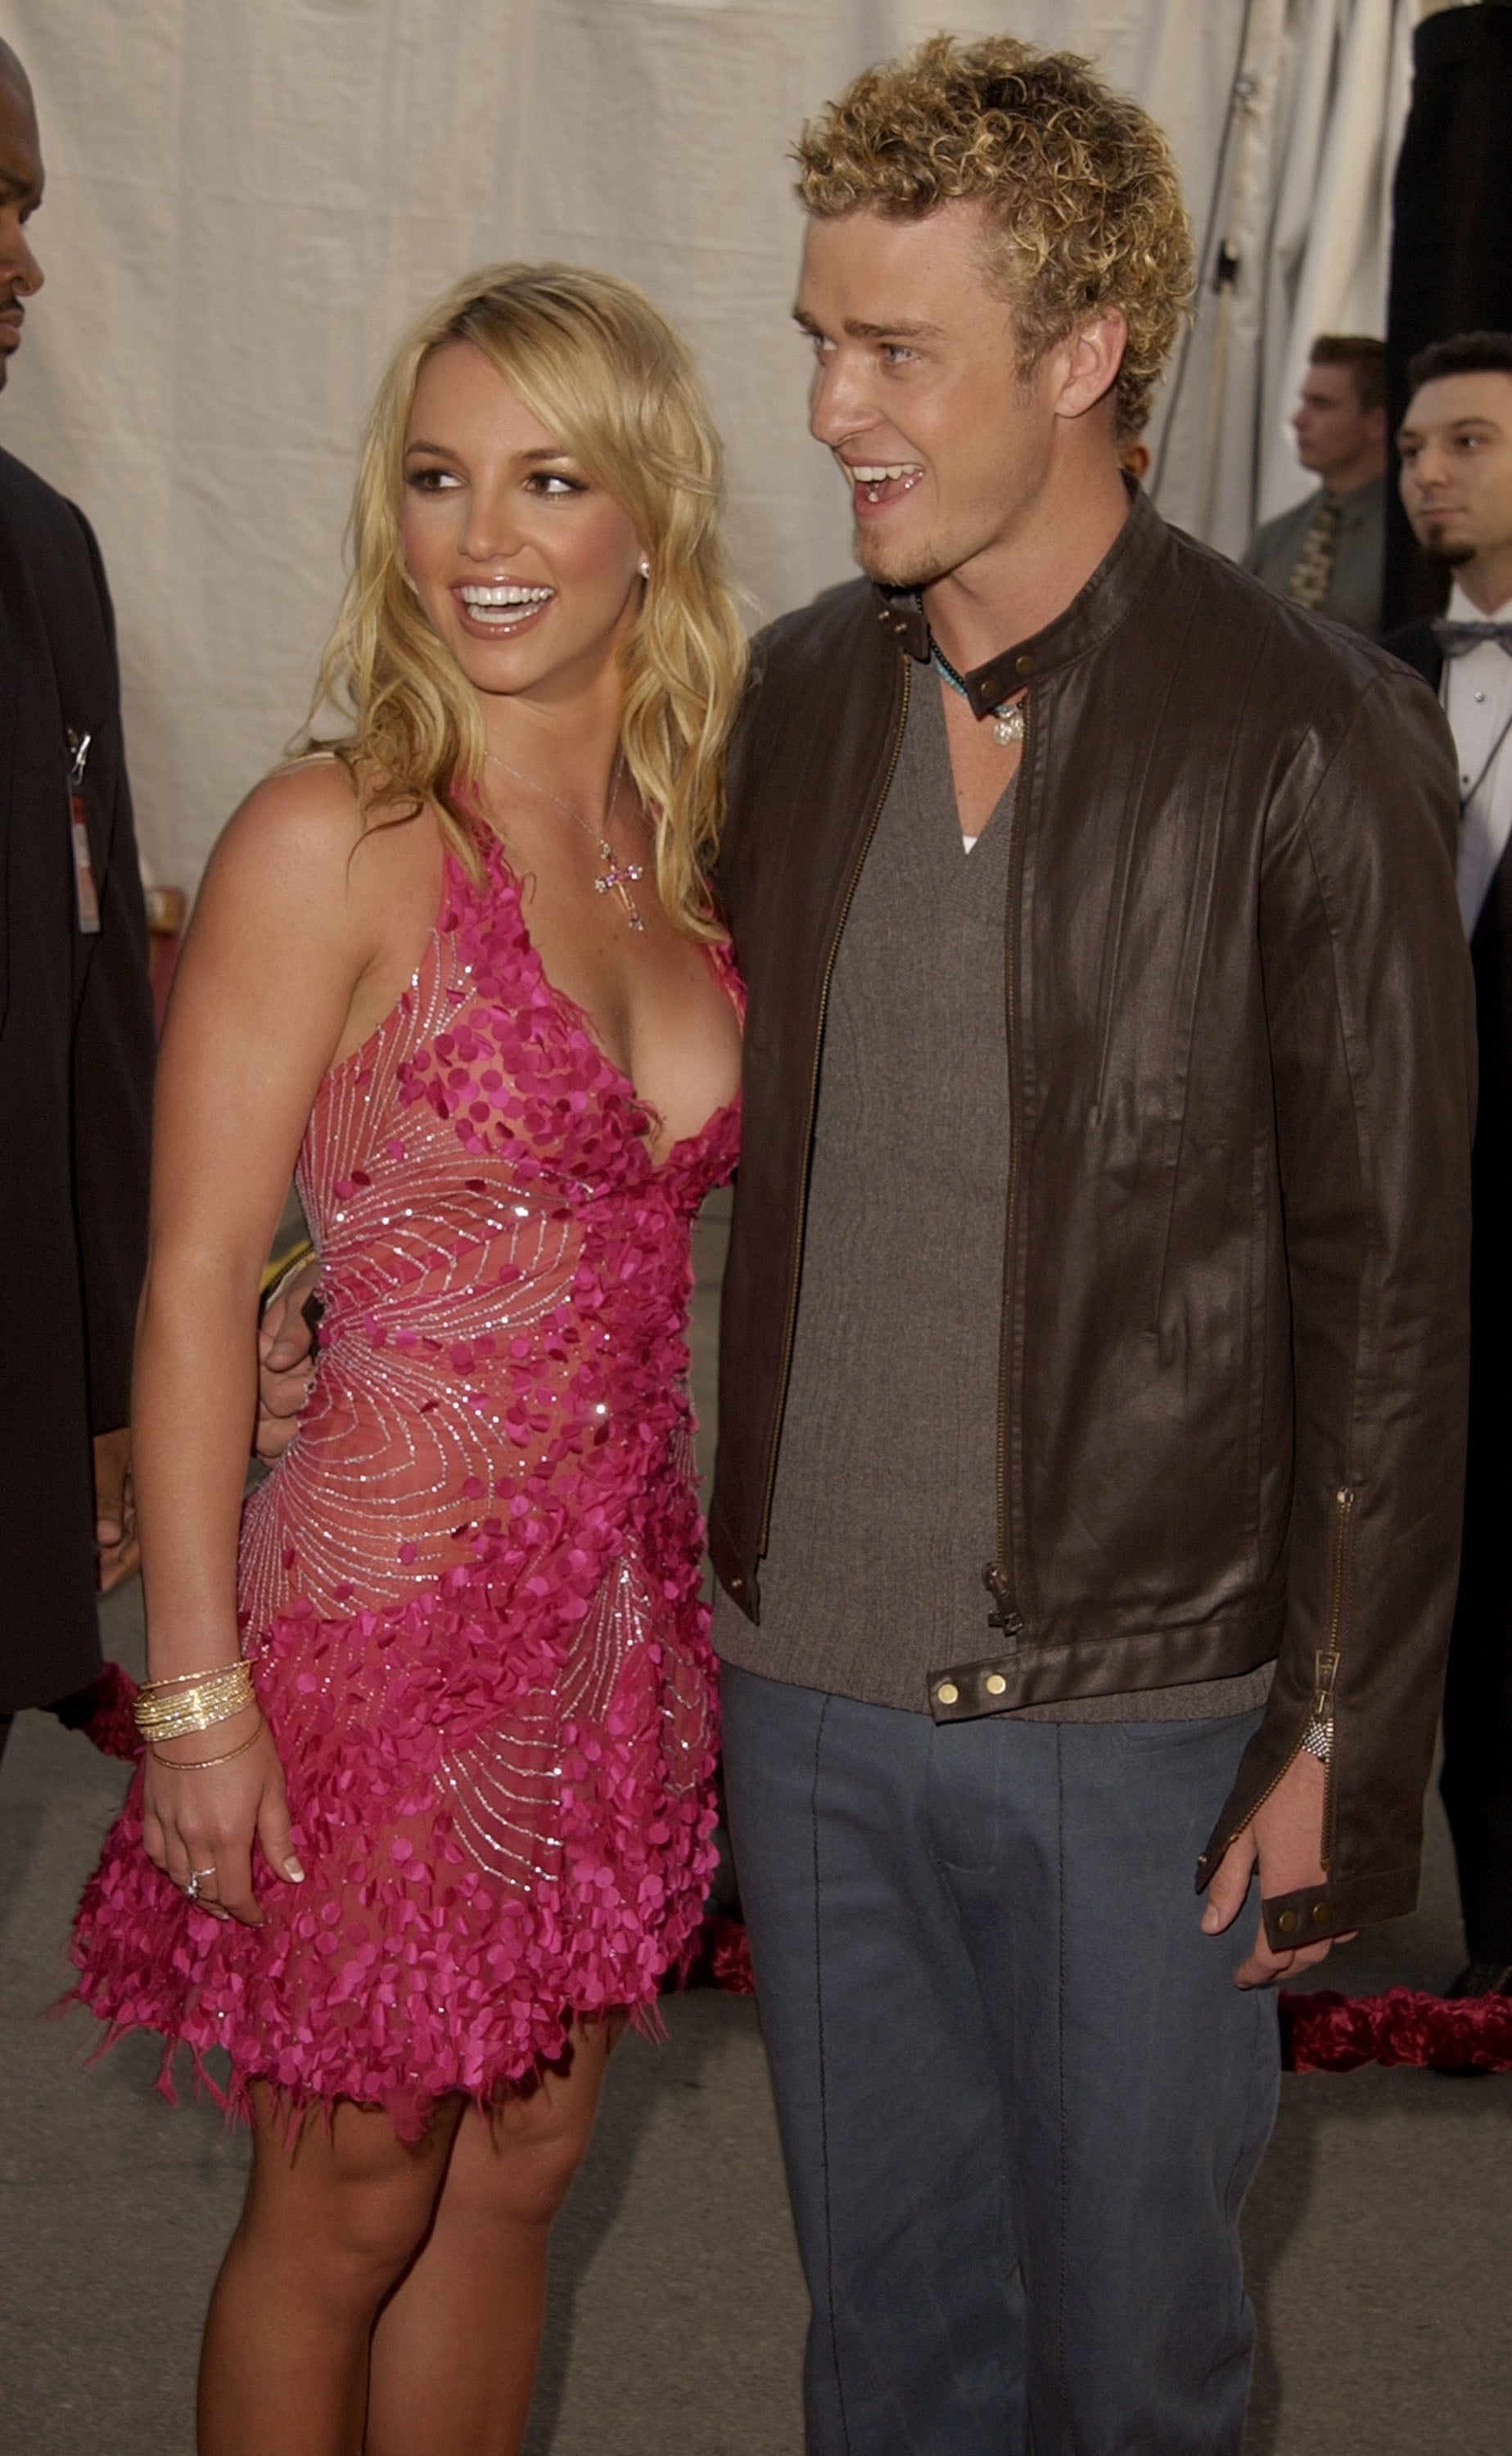 Britney Spears And Justin Timberlake At The 2002 American Music Awards A Blast From The Musical Past Look Back At The Best Amas Moments Yet Popsugar Celebrity Photo 20